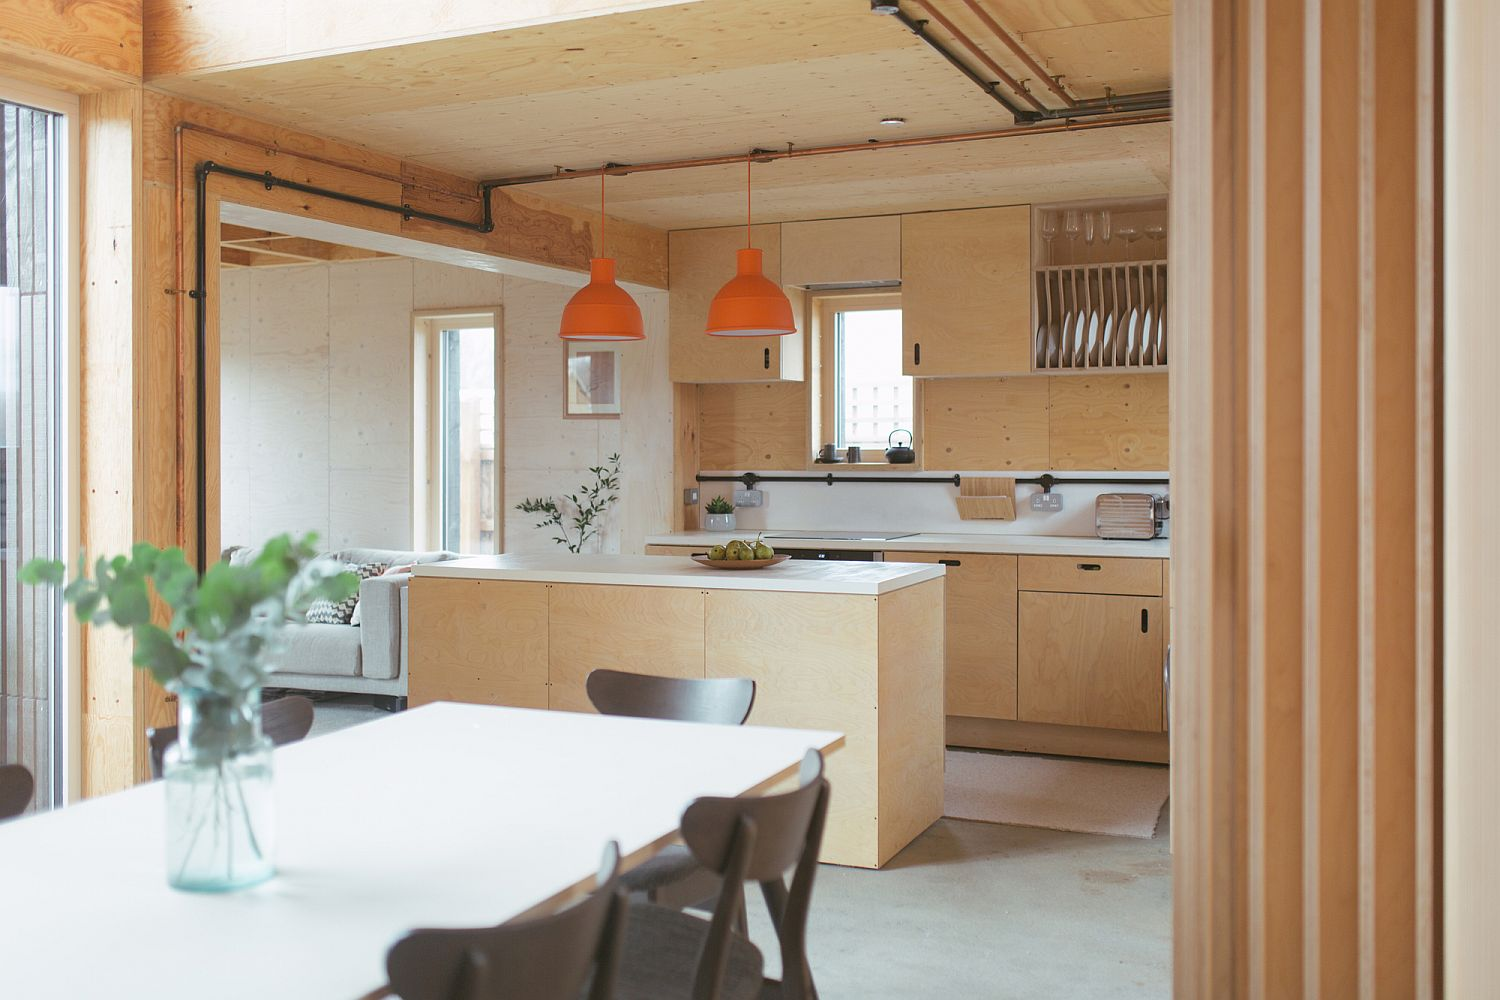 Twin-orange-pendants-add-color-to-the-neutral-kitchen-space